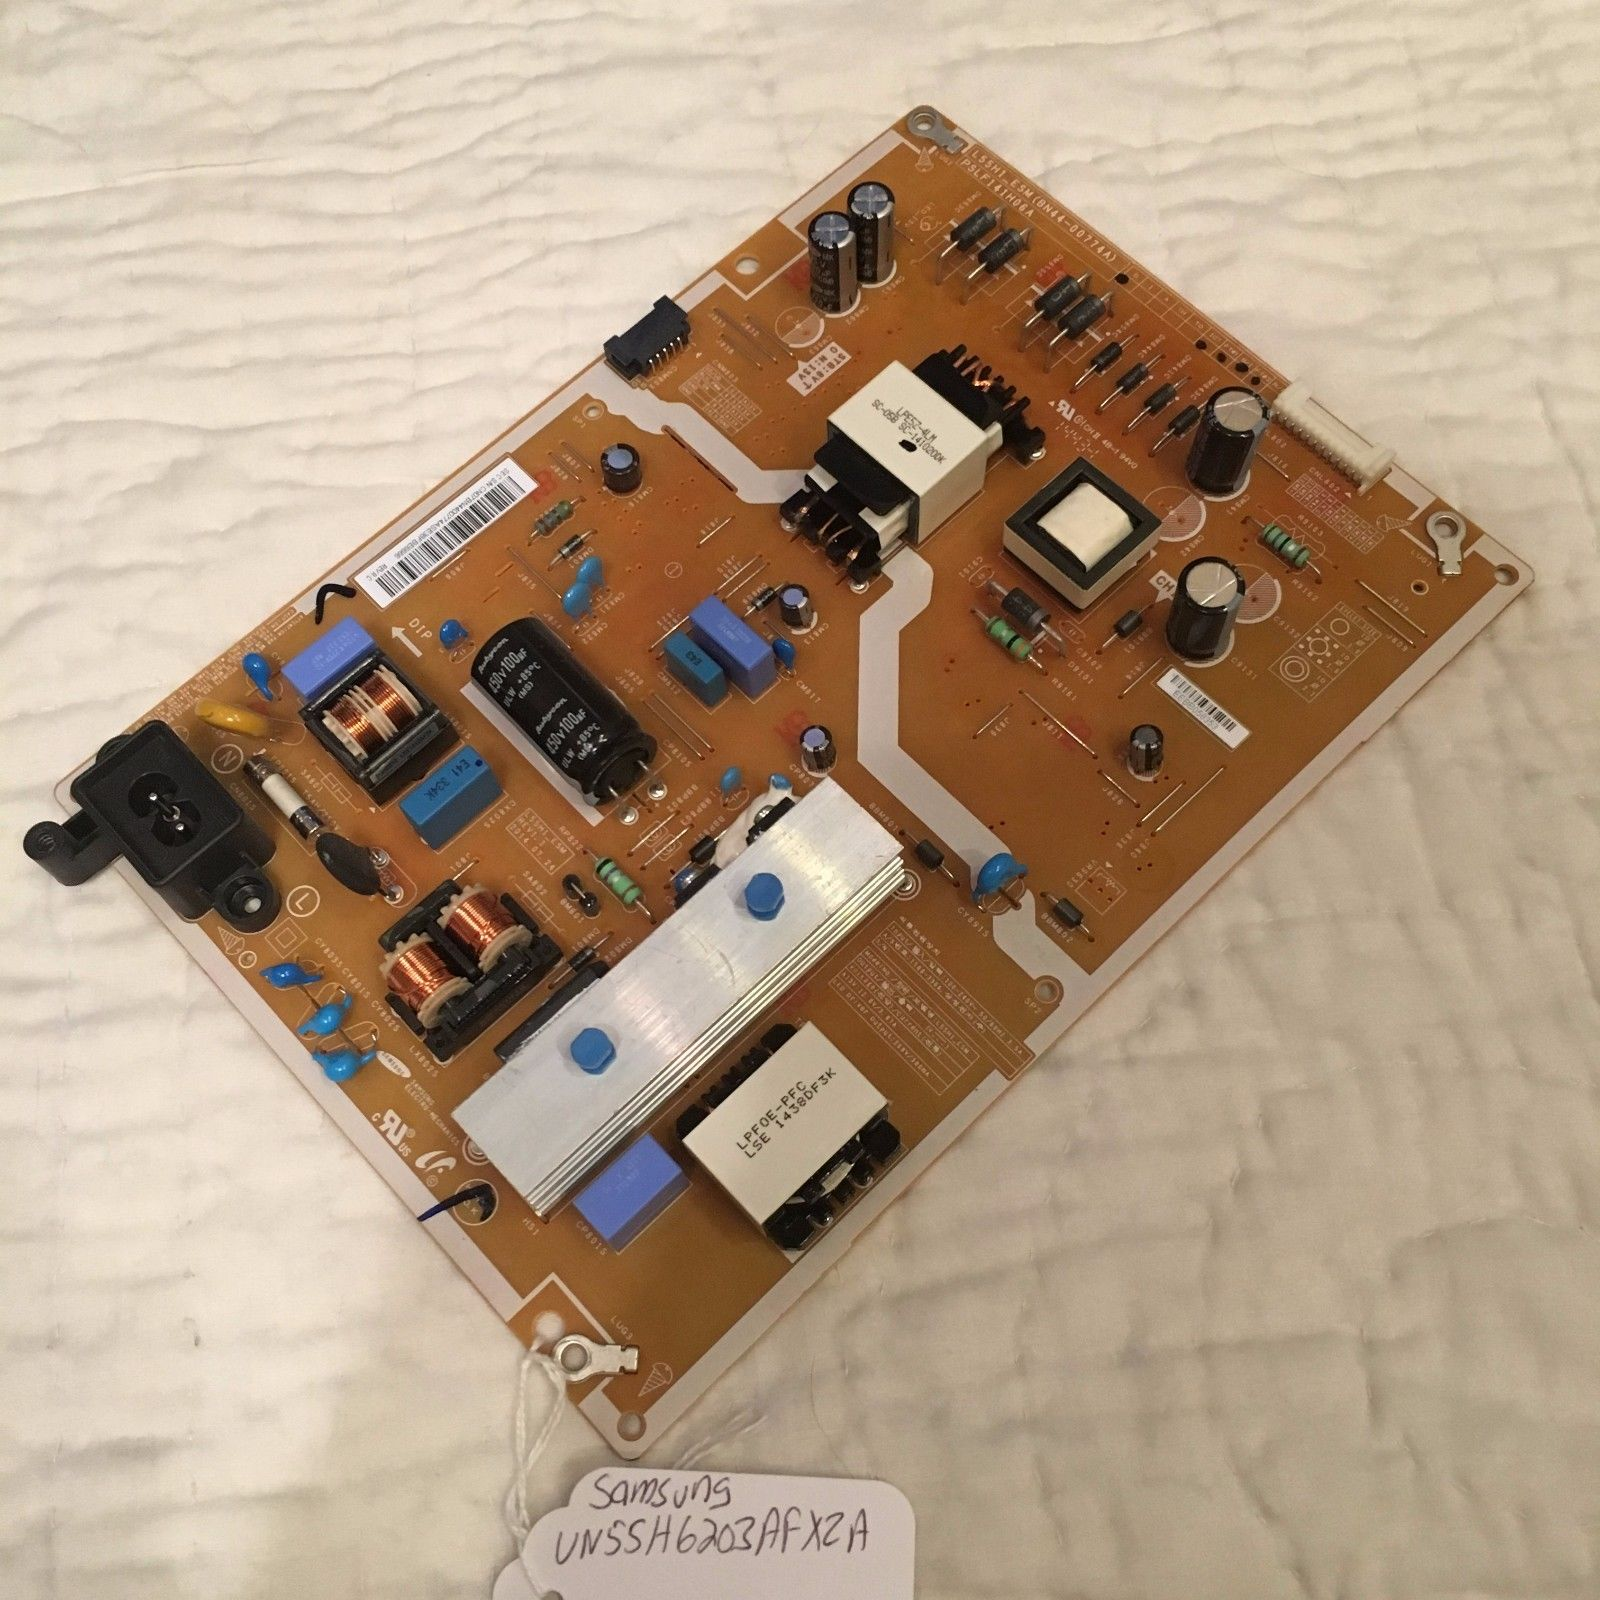 SAMSUNG BN44-00774A POWER SUPPLY BOARD FOR UN60J6200A AND OTHER